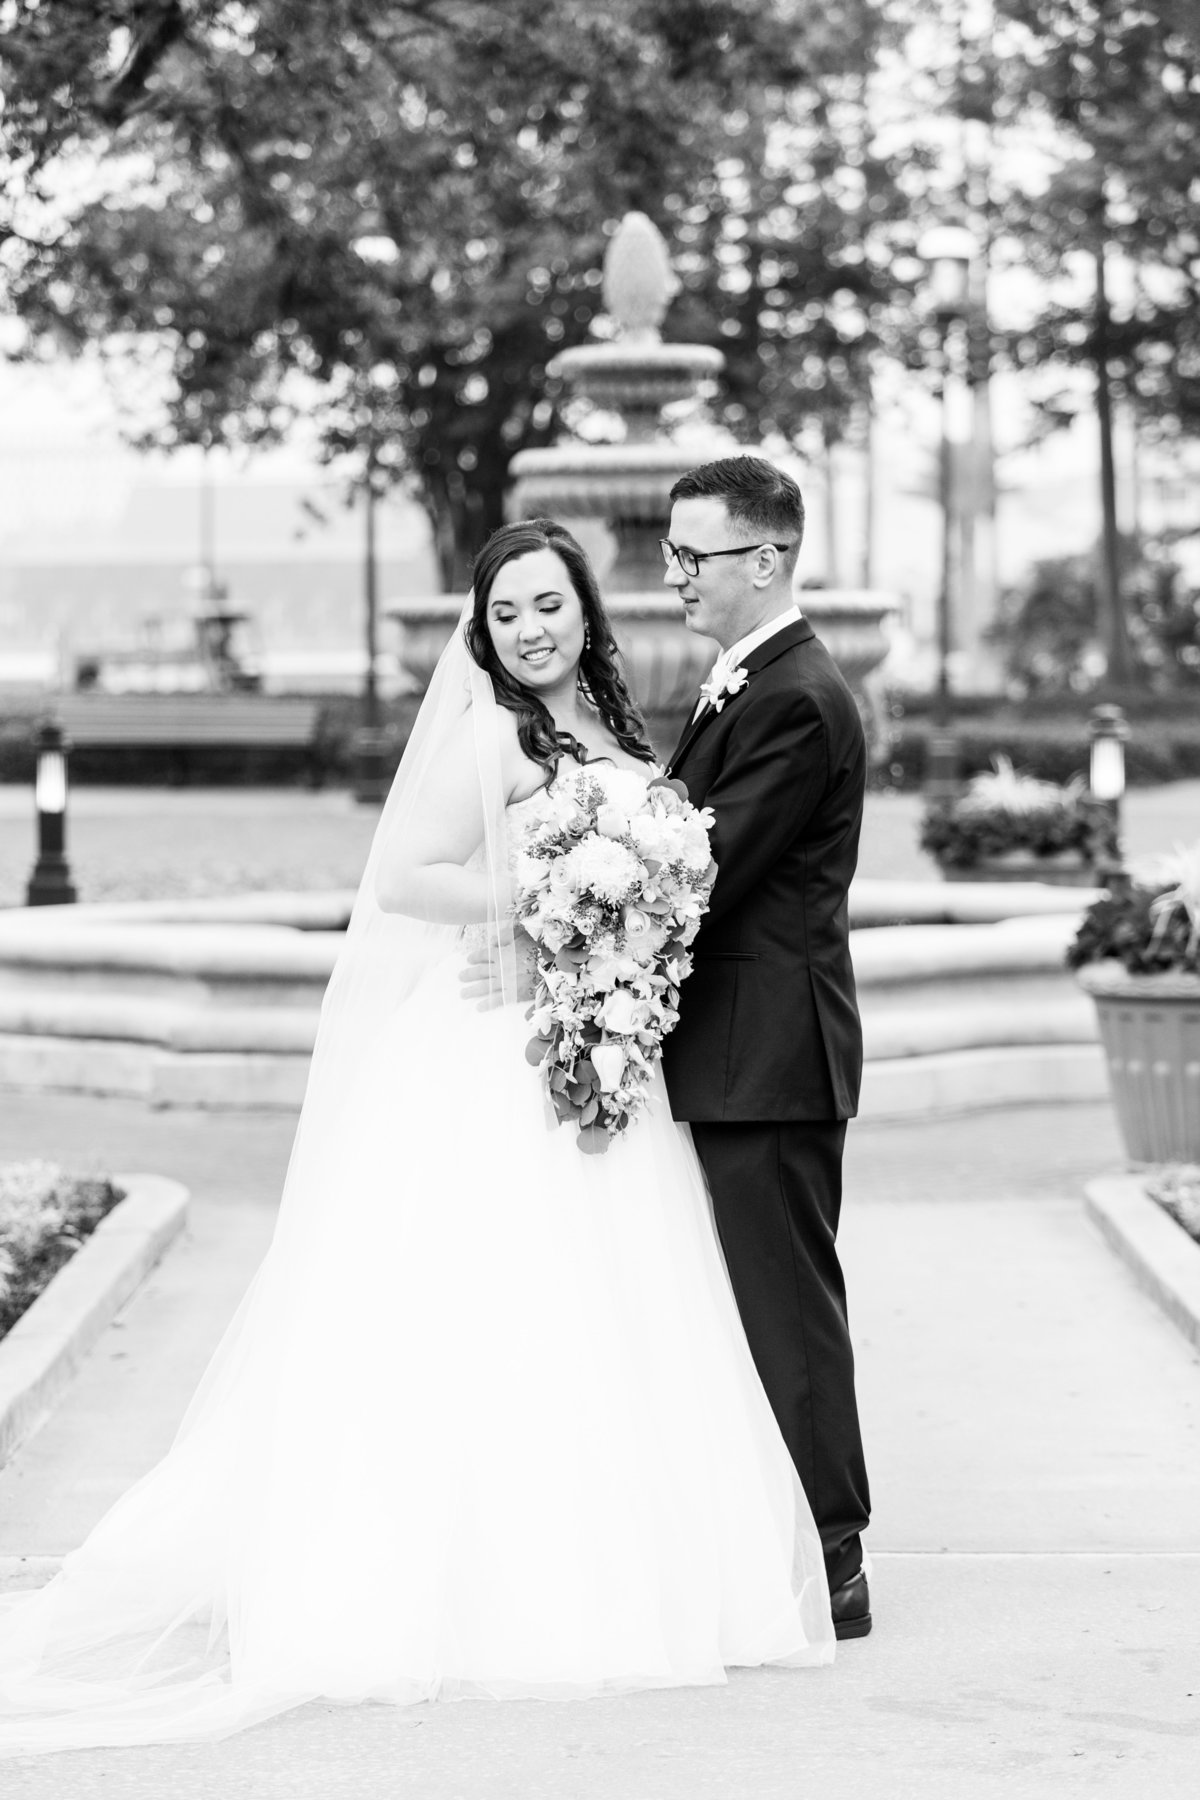 Jess Collins Photography Our Disney Wedding 2017 (230 of 668)